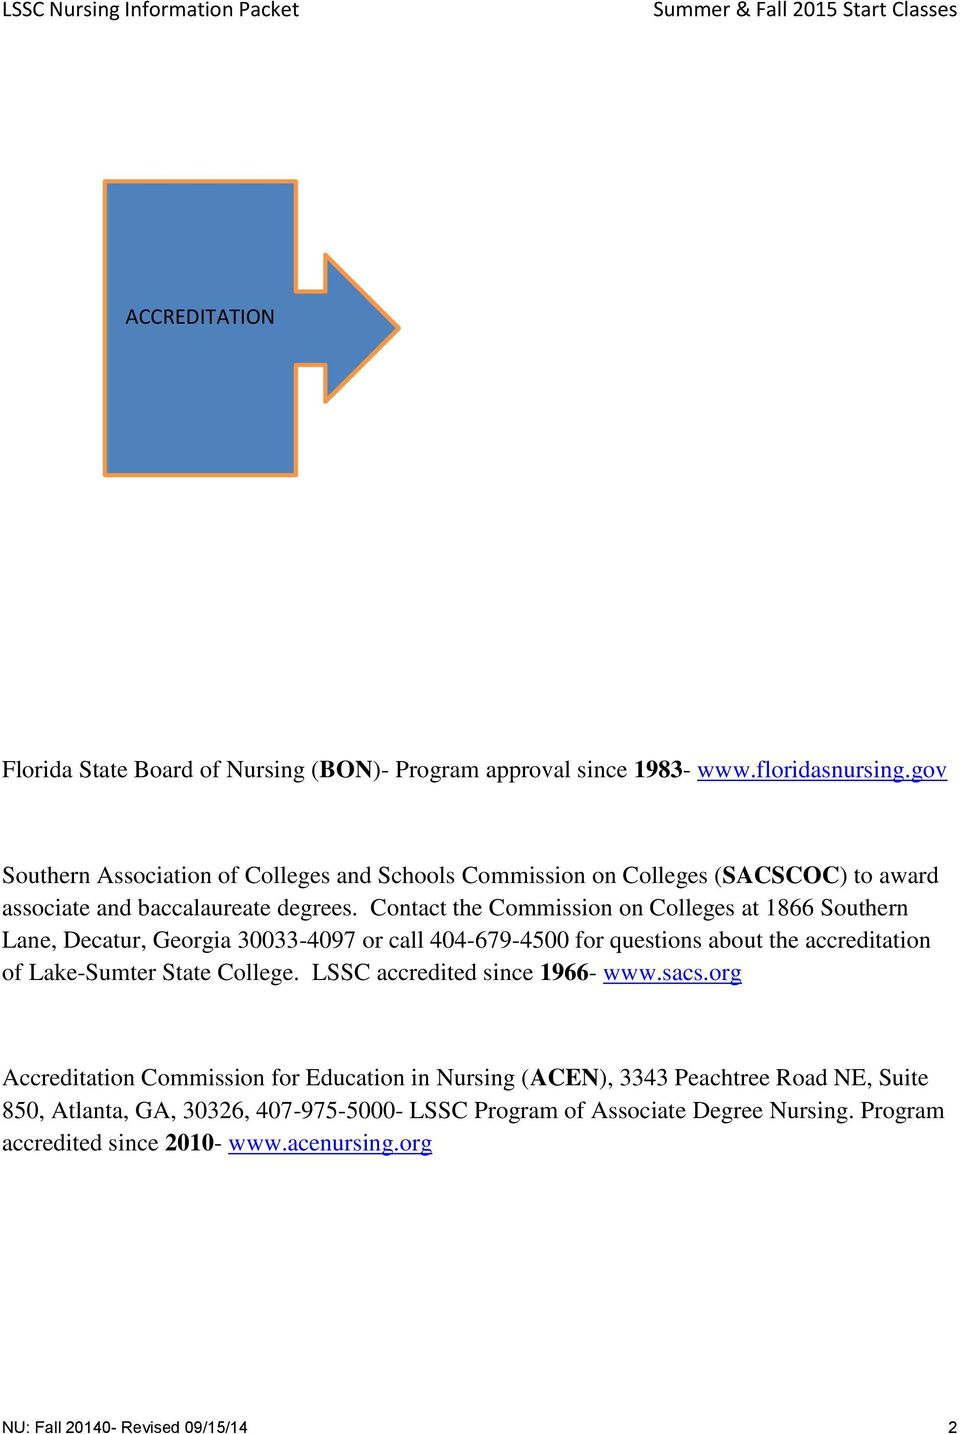 Contact the Commission on Colleges at 1866 Southern Lane, Decatur, Georgia 30033-4097 or call 404-679-4500 for questions about the accreditation of Lake-Sumter State College.